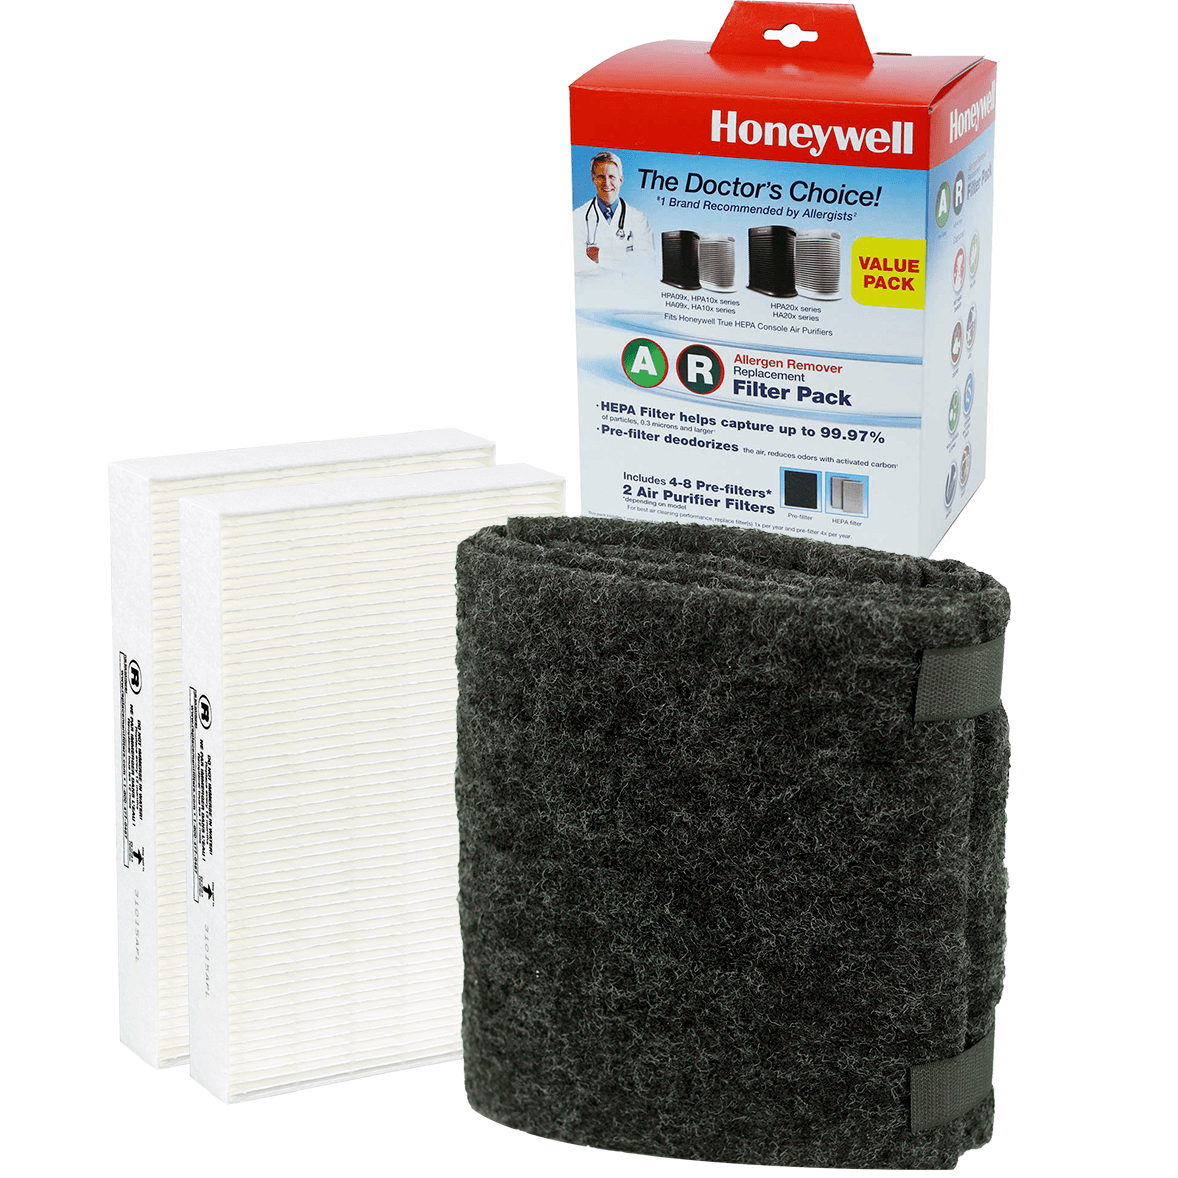 Honeywell True HEPA Filter Value Combo Pack (HRF-ARVP) ho4111